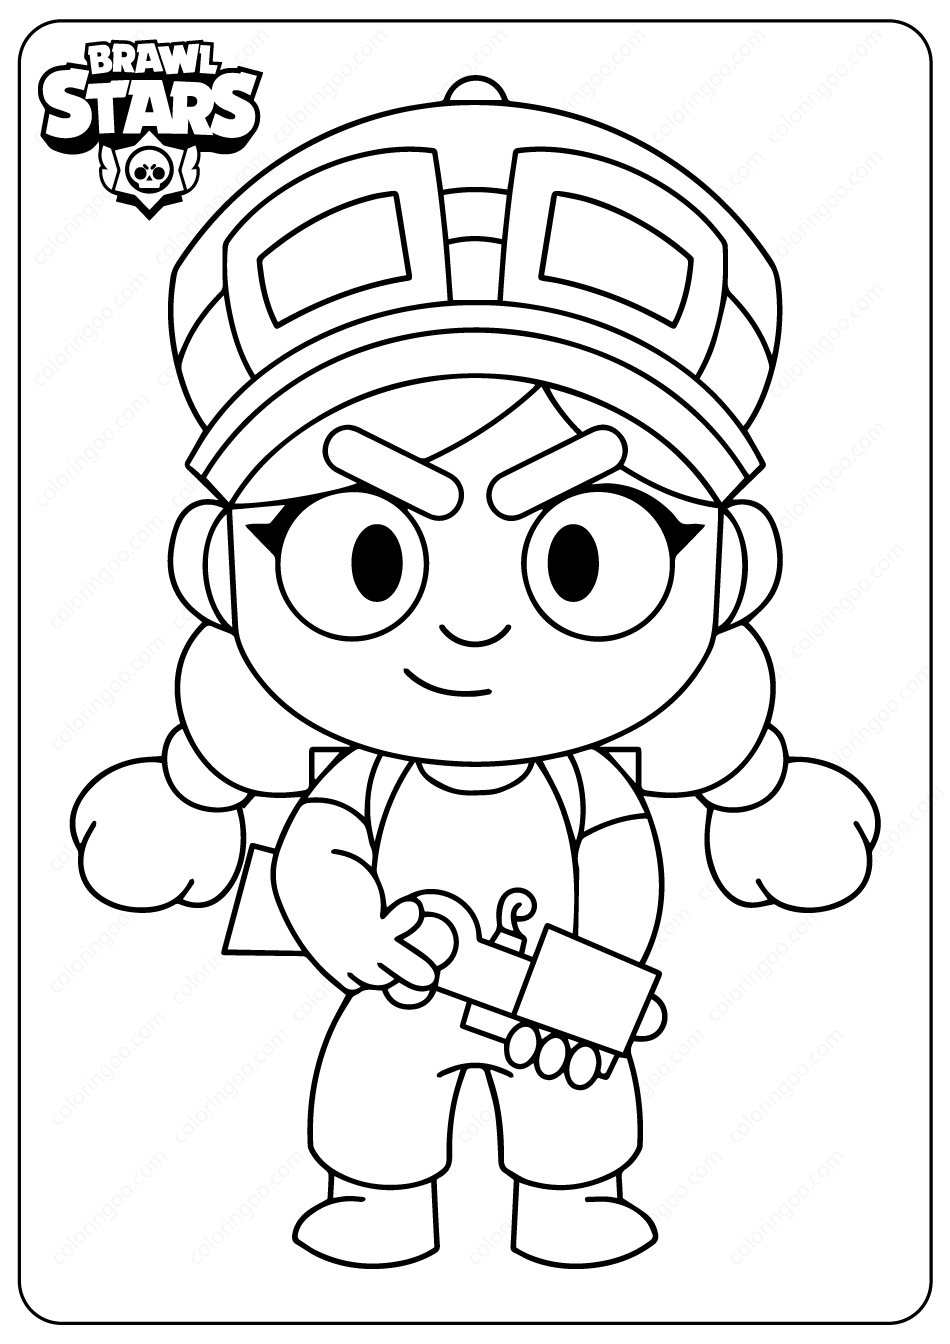 brawl star coloring brawl stars coloring pages print and colorcom coloring star brawl